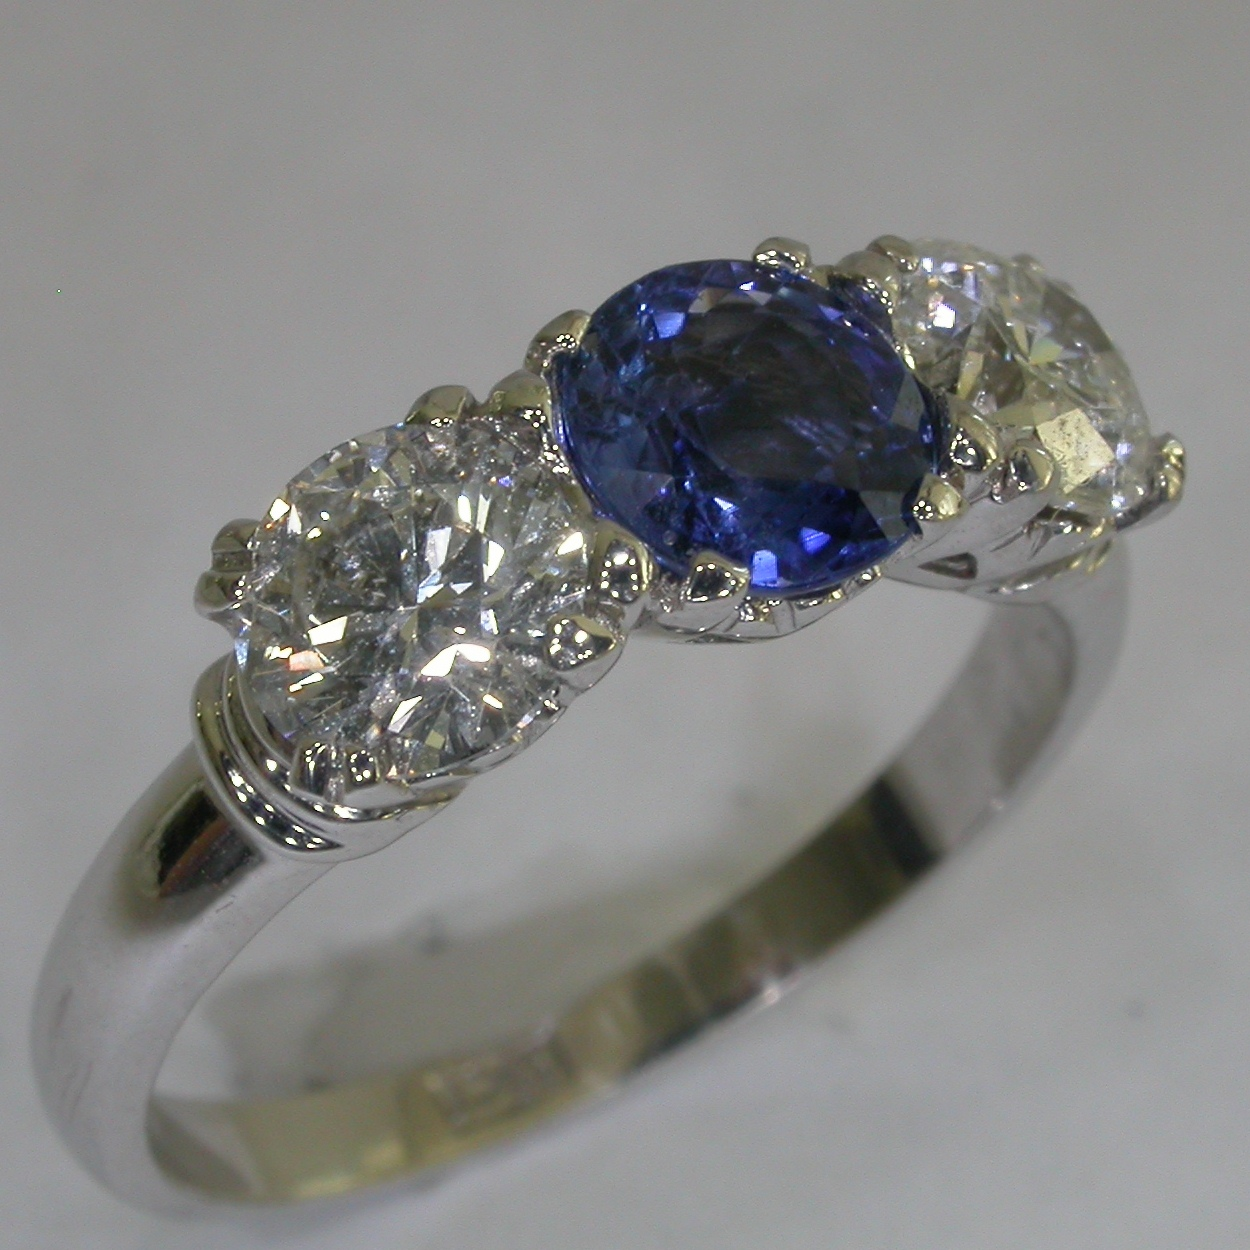 Colour Stone Engagement Rings in Melbourne - #7198